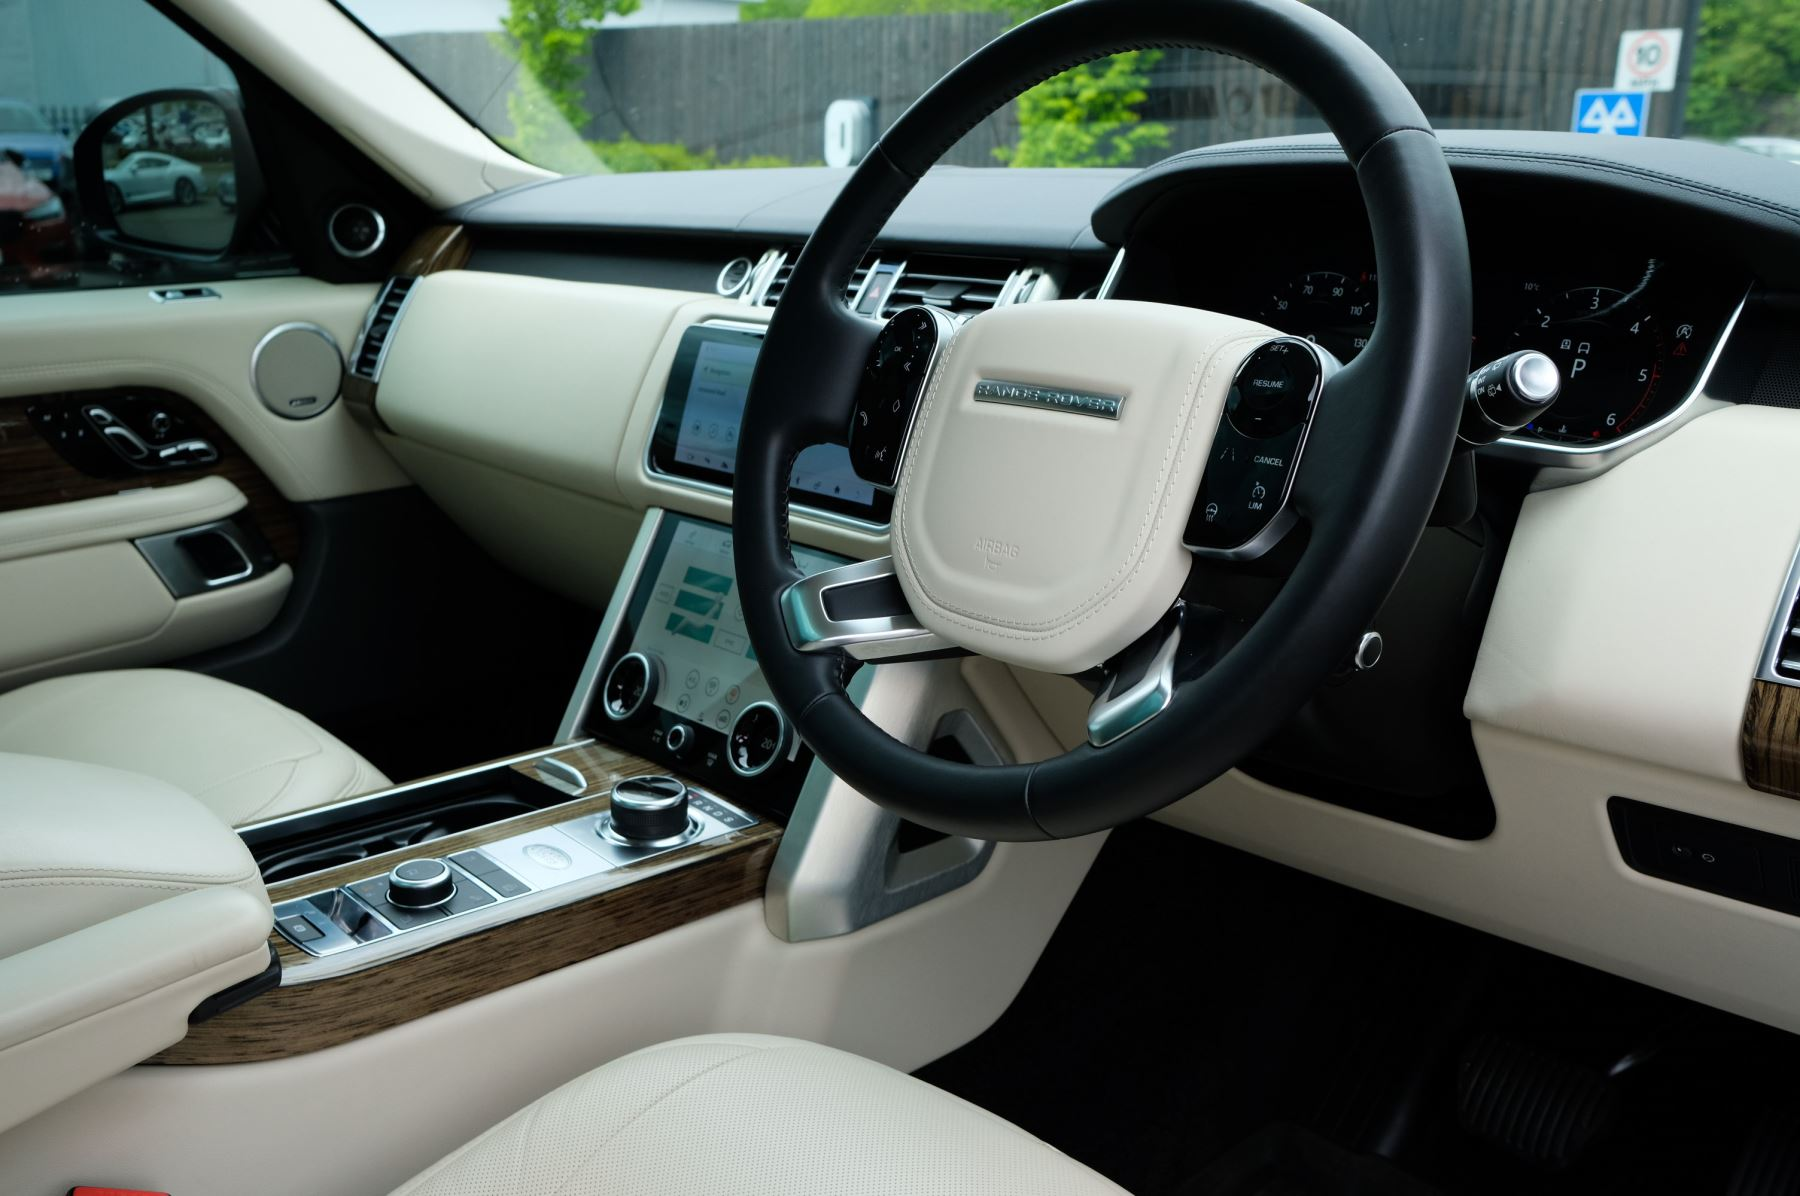 Land Rover Range Rover 3.0 SDV6 Vogue SE - Panoramic Roof - Privacy Glass - 21 inch Alloys image 11